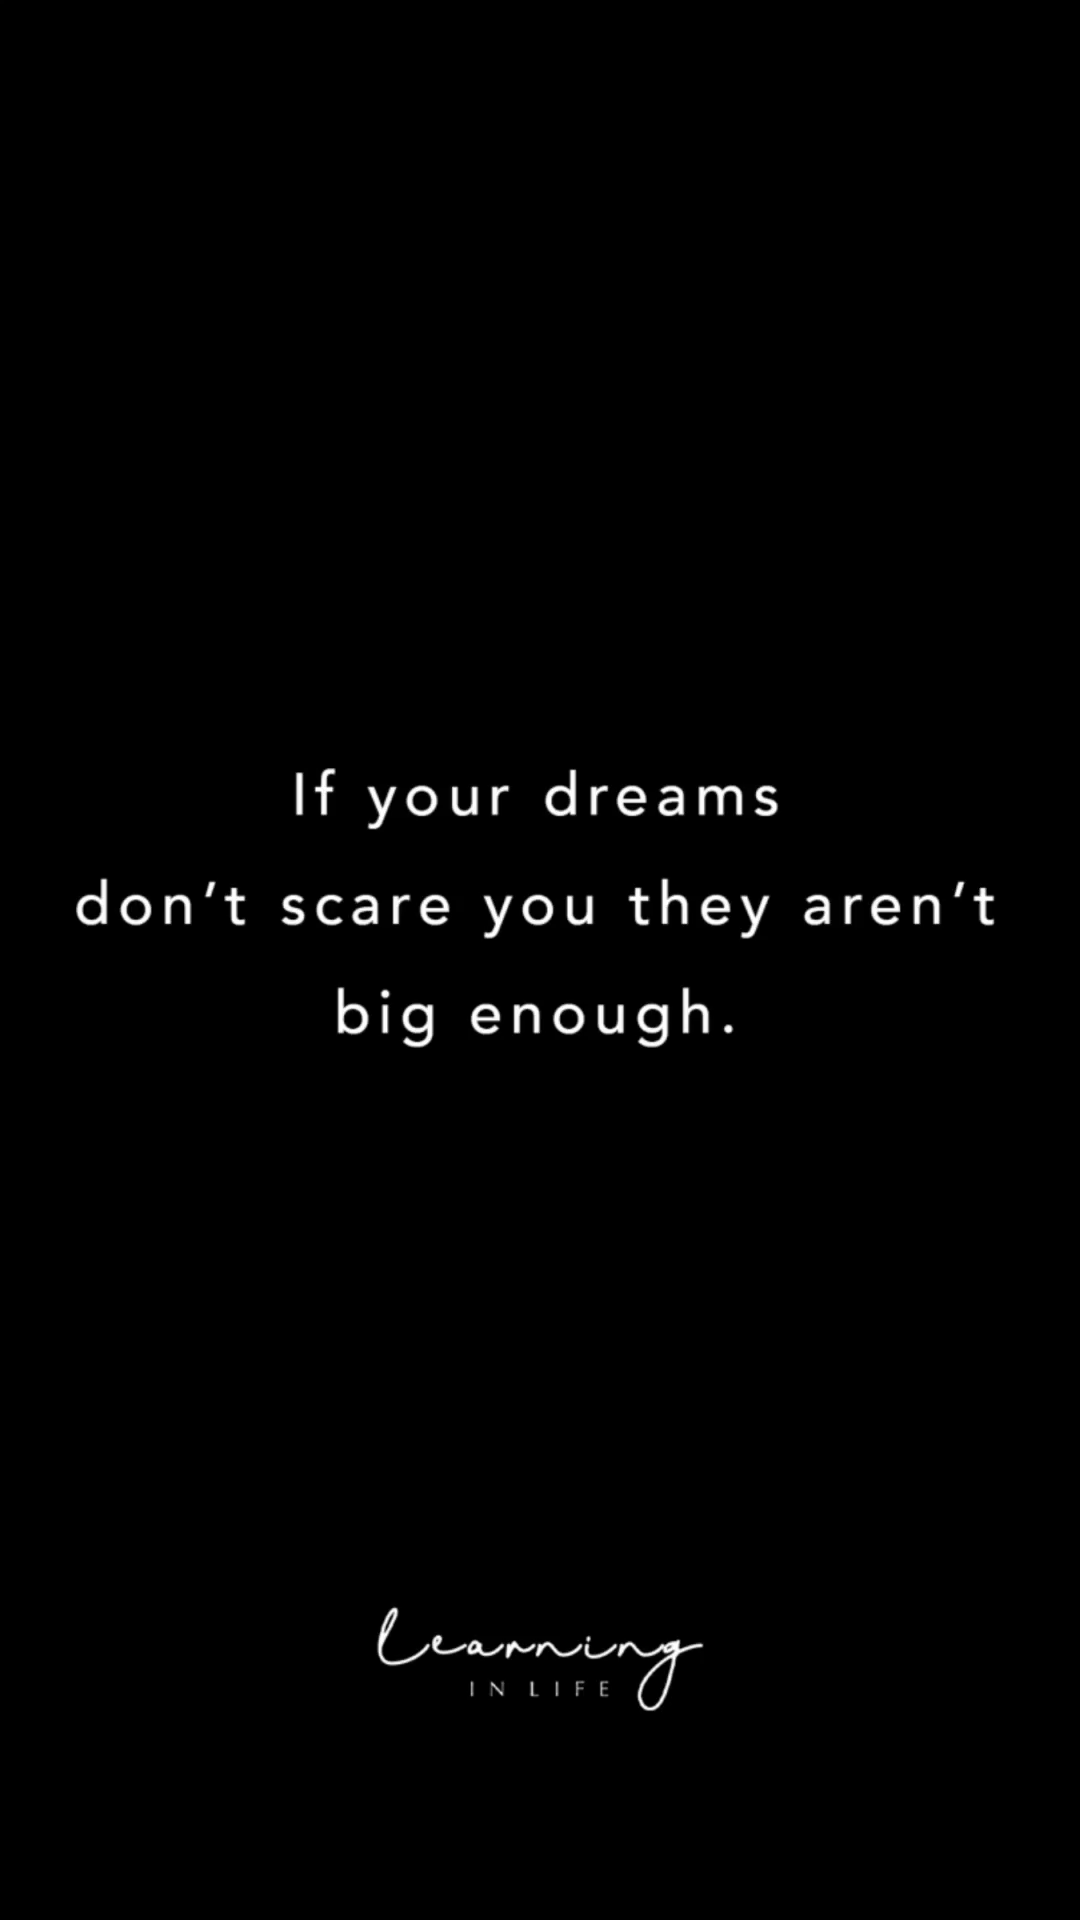 Inspirational Quotes Words to inspire. Words to live by #dreams